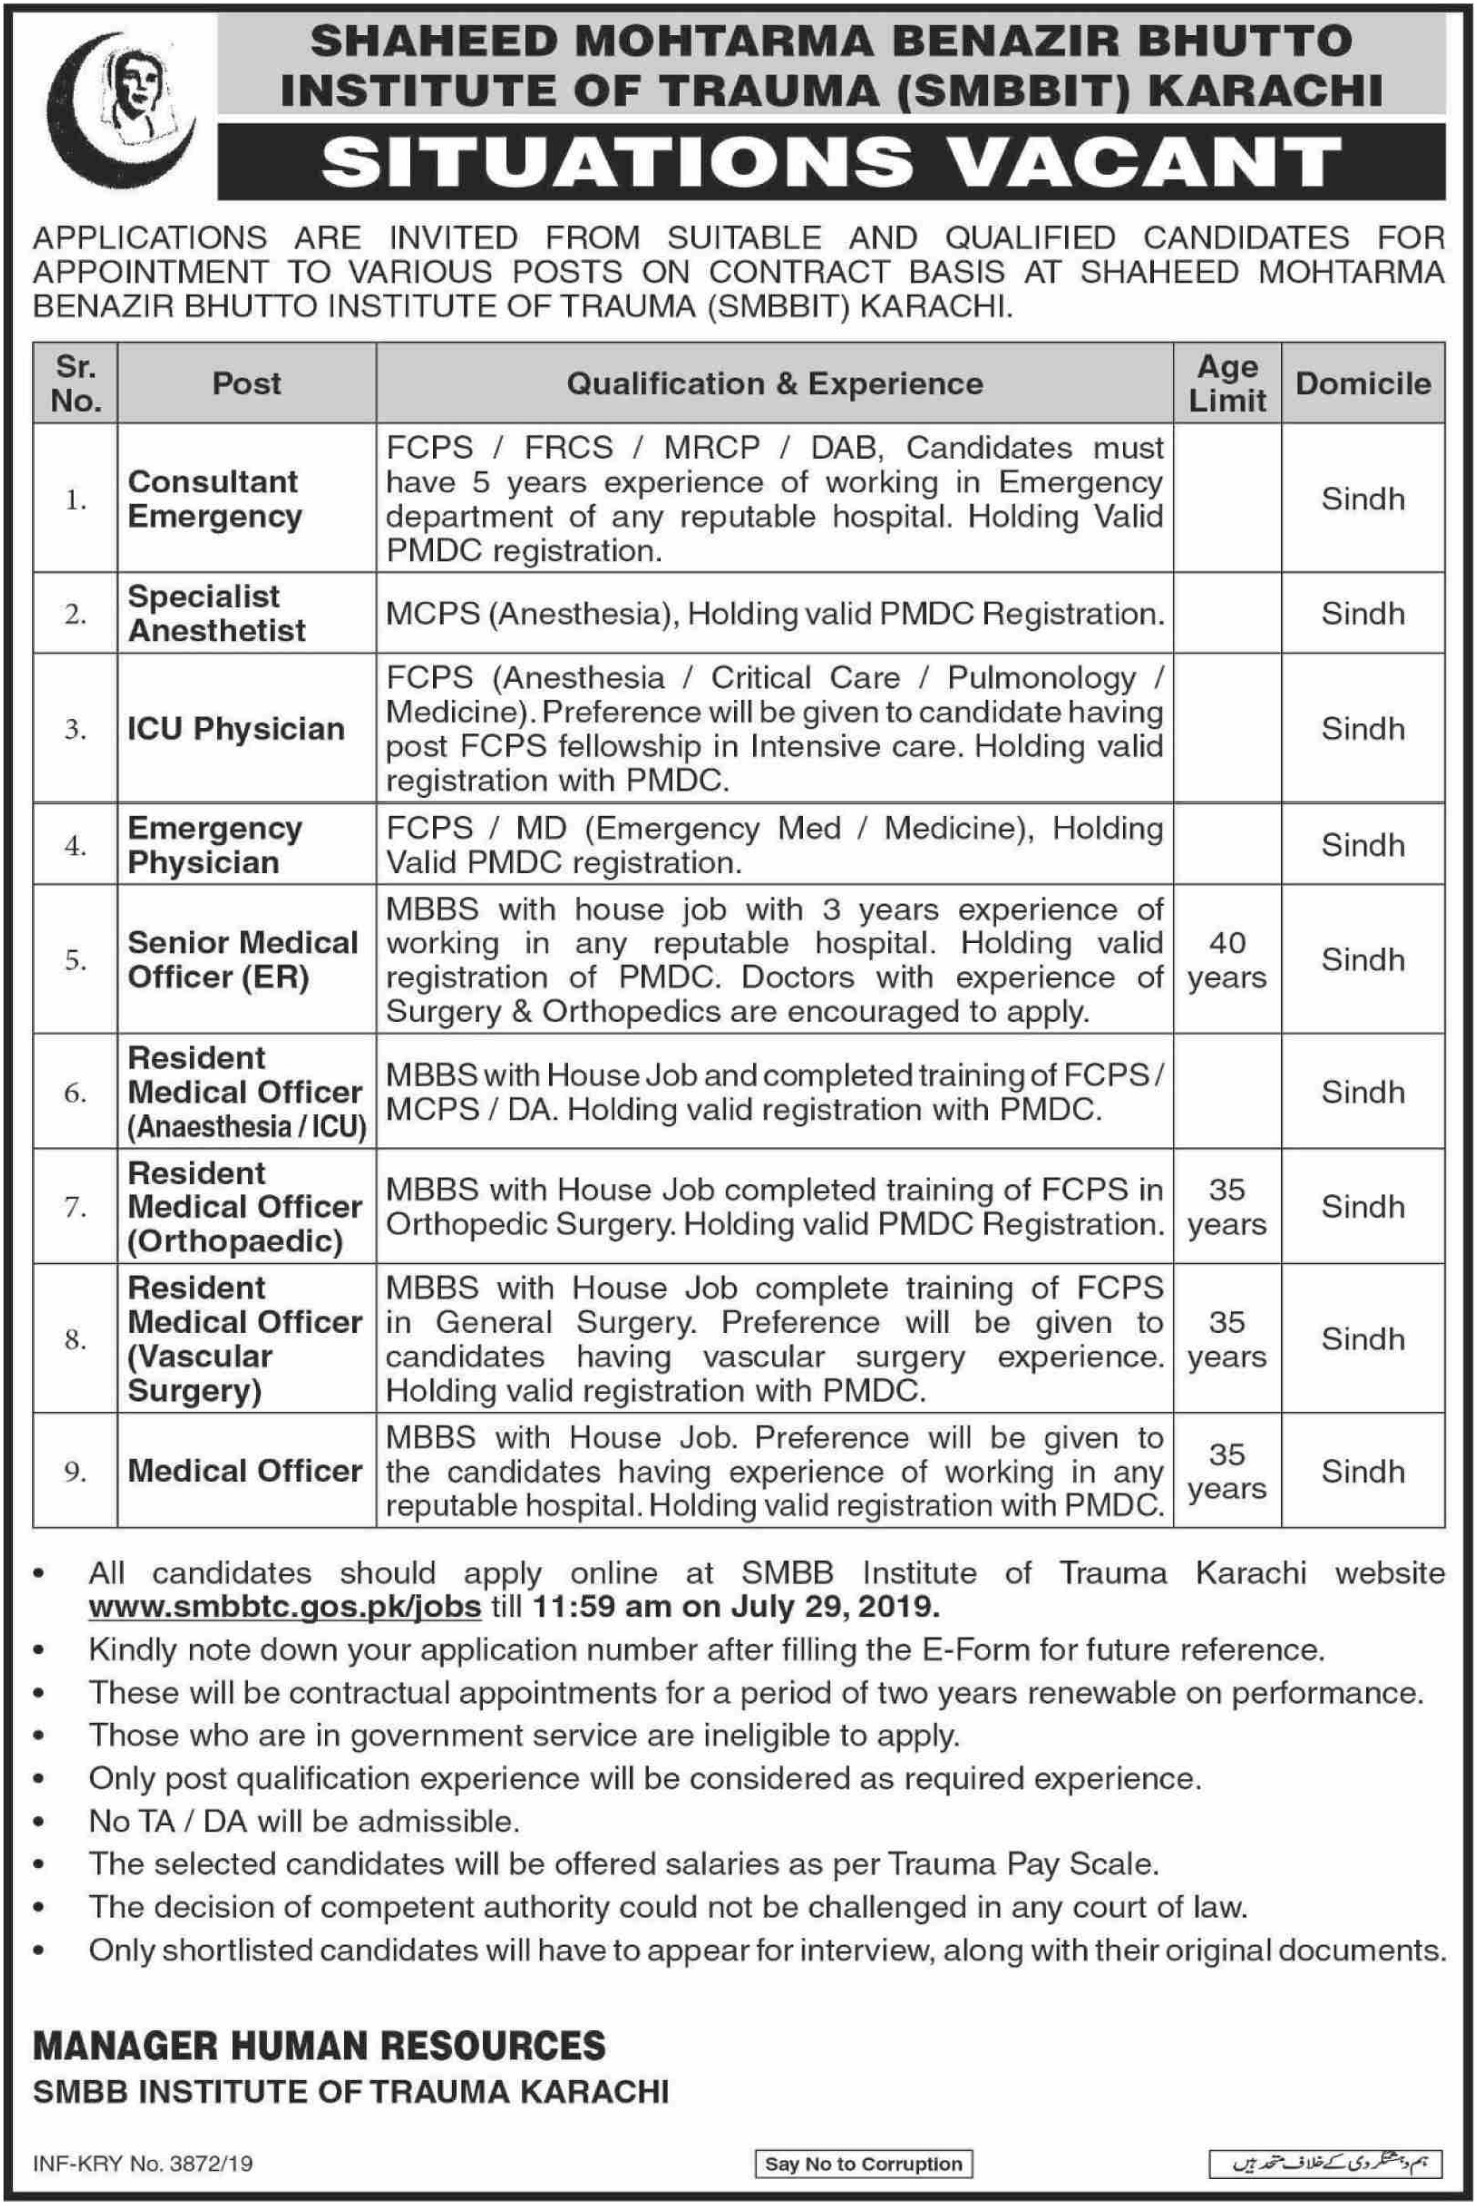 Shaheed Mohtarma Benazir Bhutto Institute of Trauma SMBBIT Karachi Jobs 2019(2)